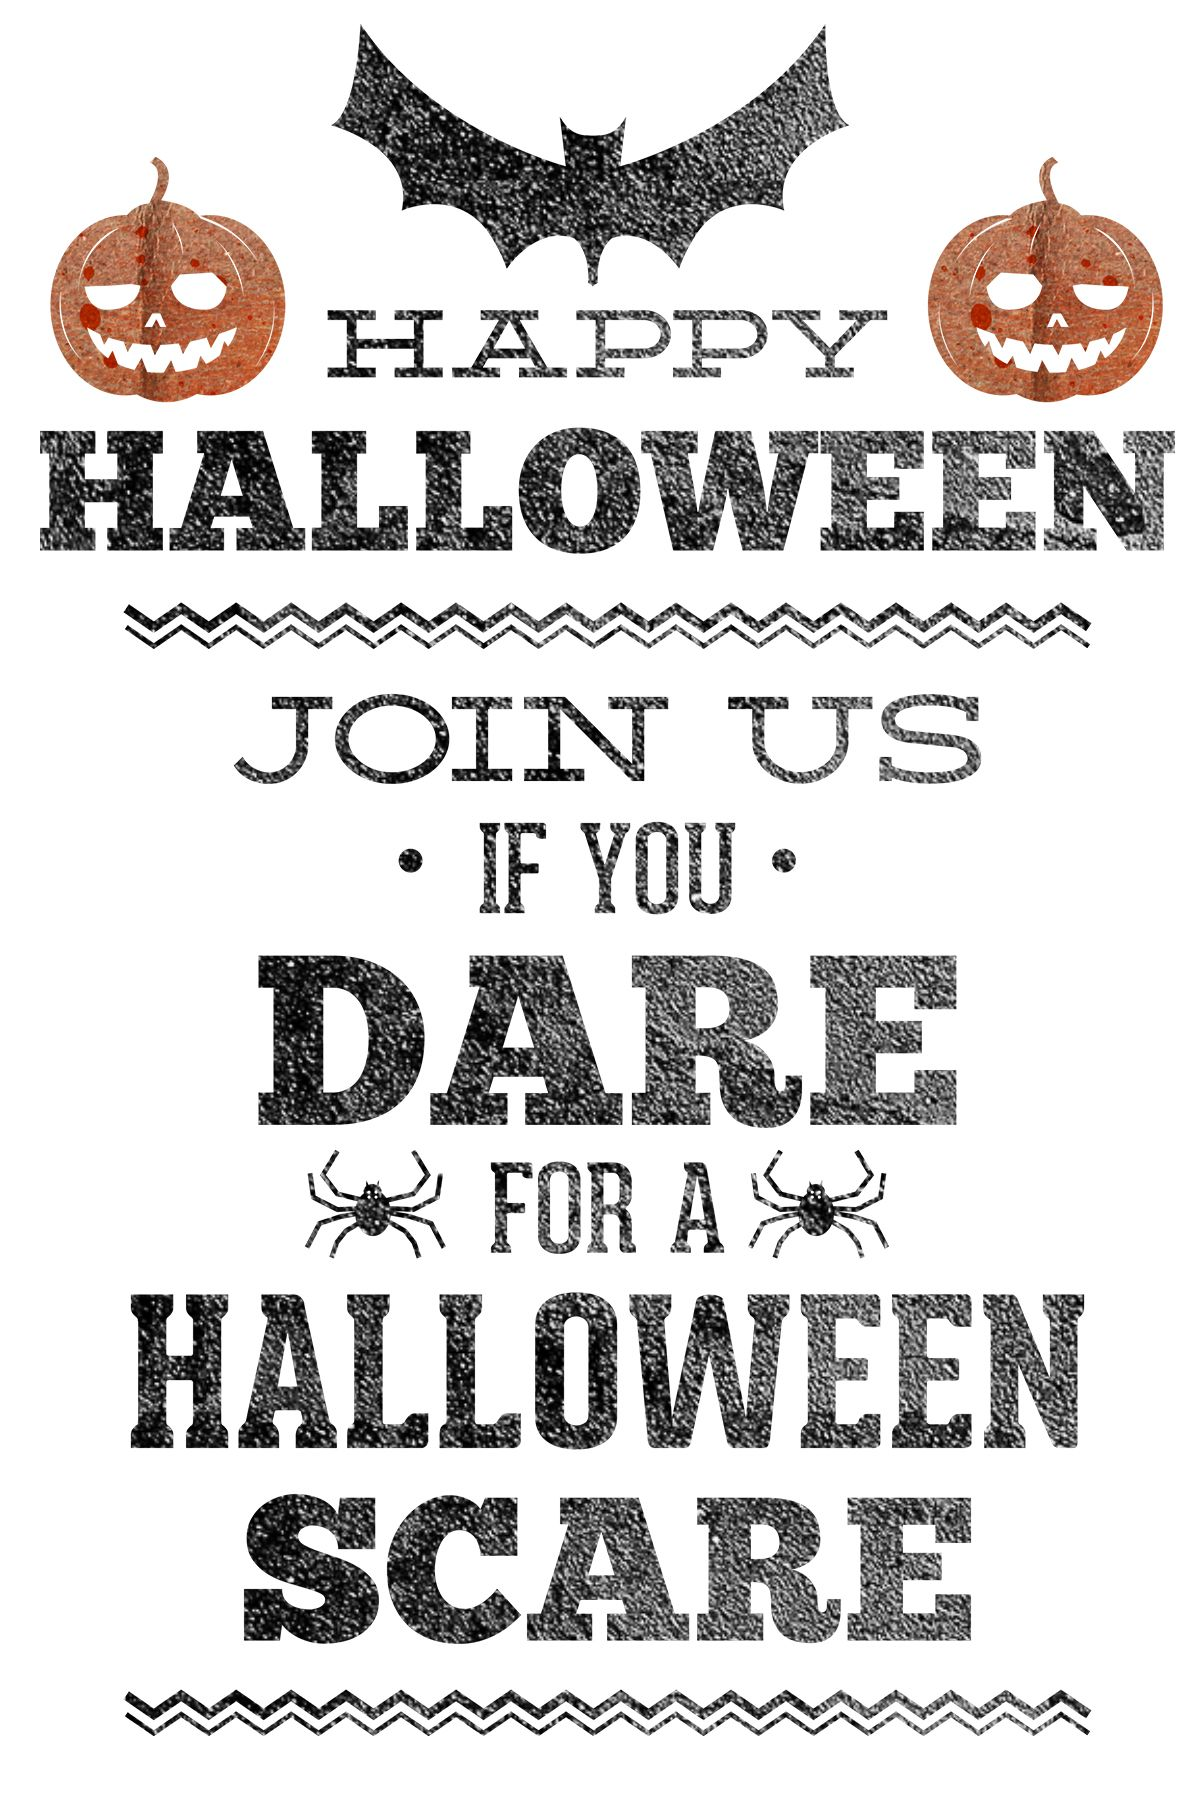 Free Printable Halloween Party Invitation – Free Printable Halloween Party Invitations Templates